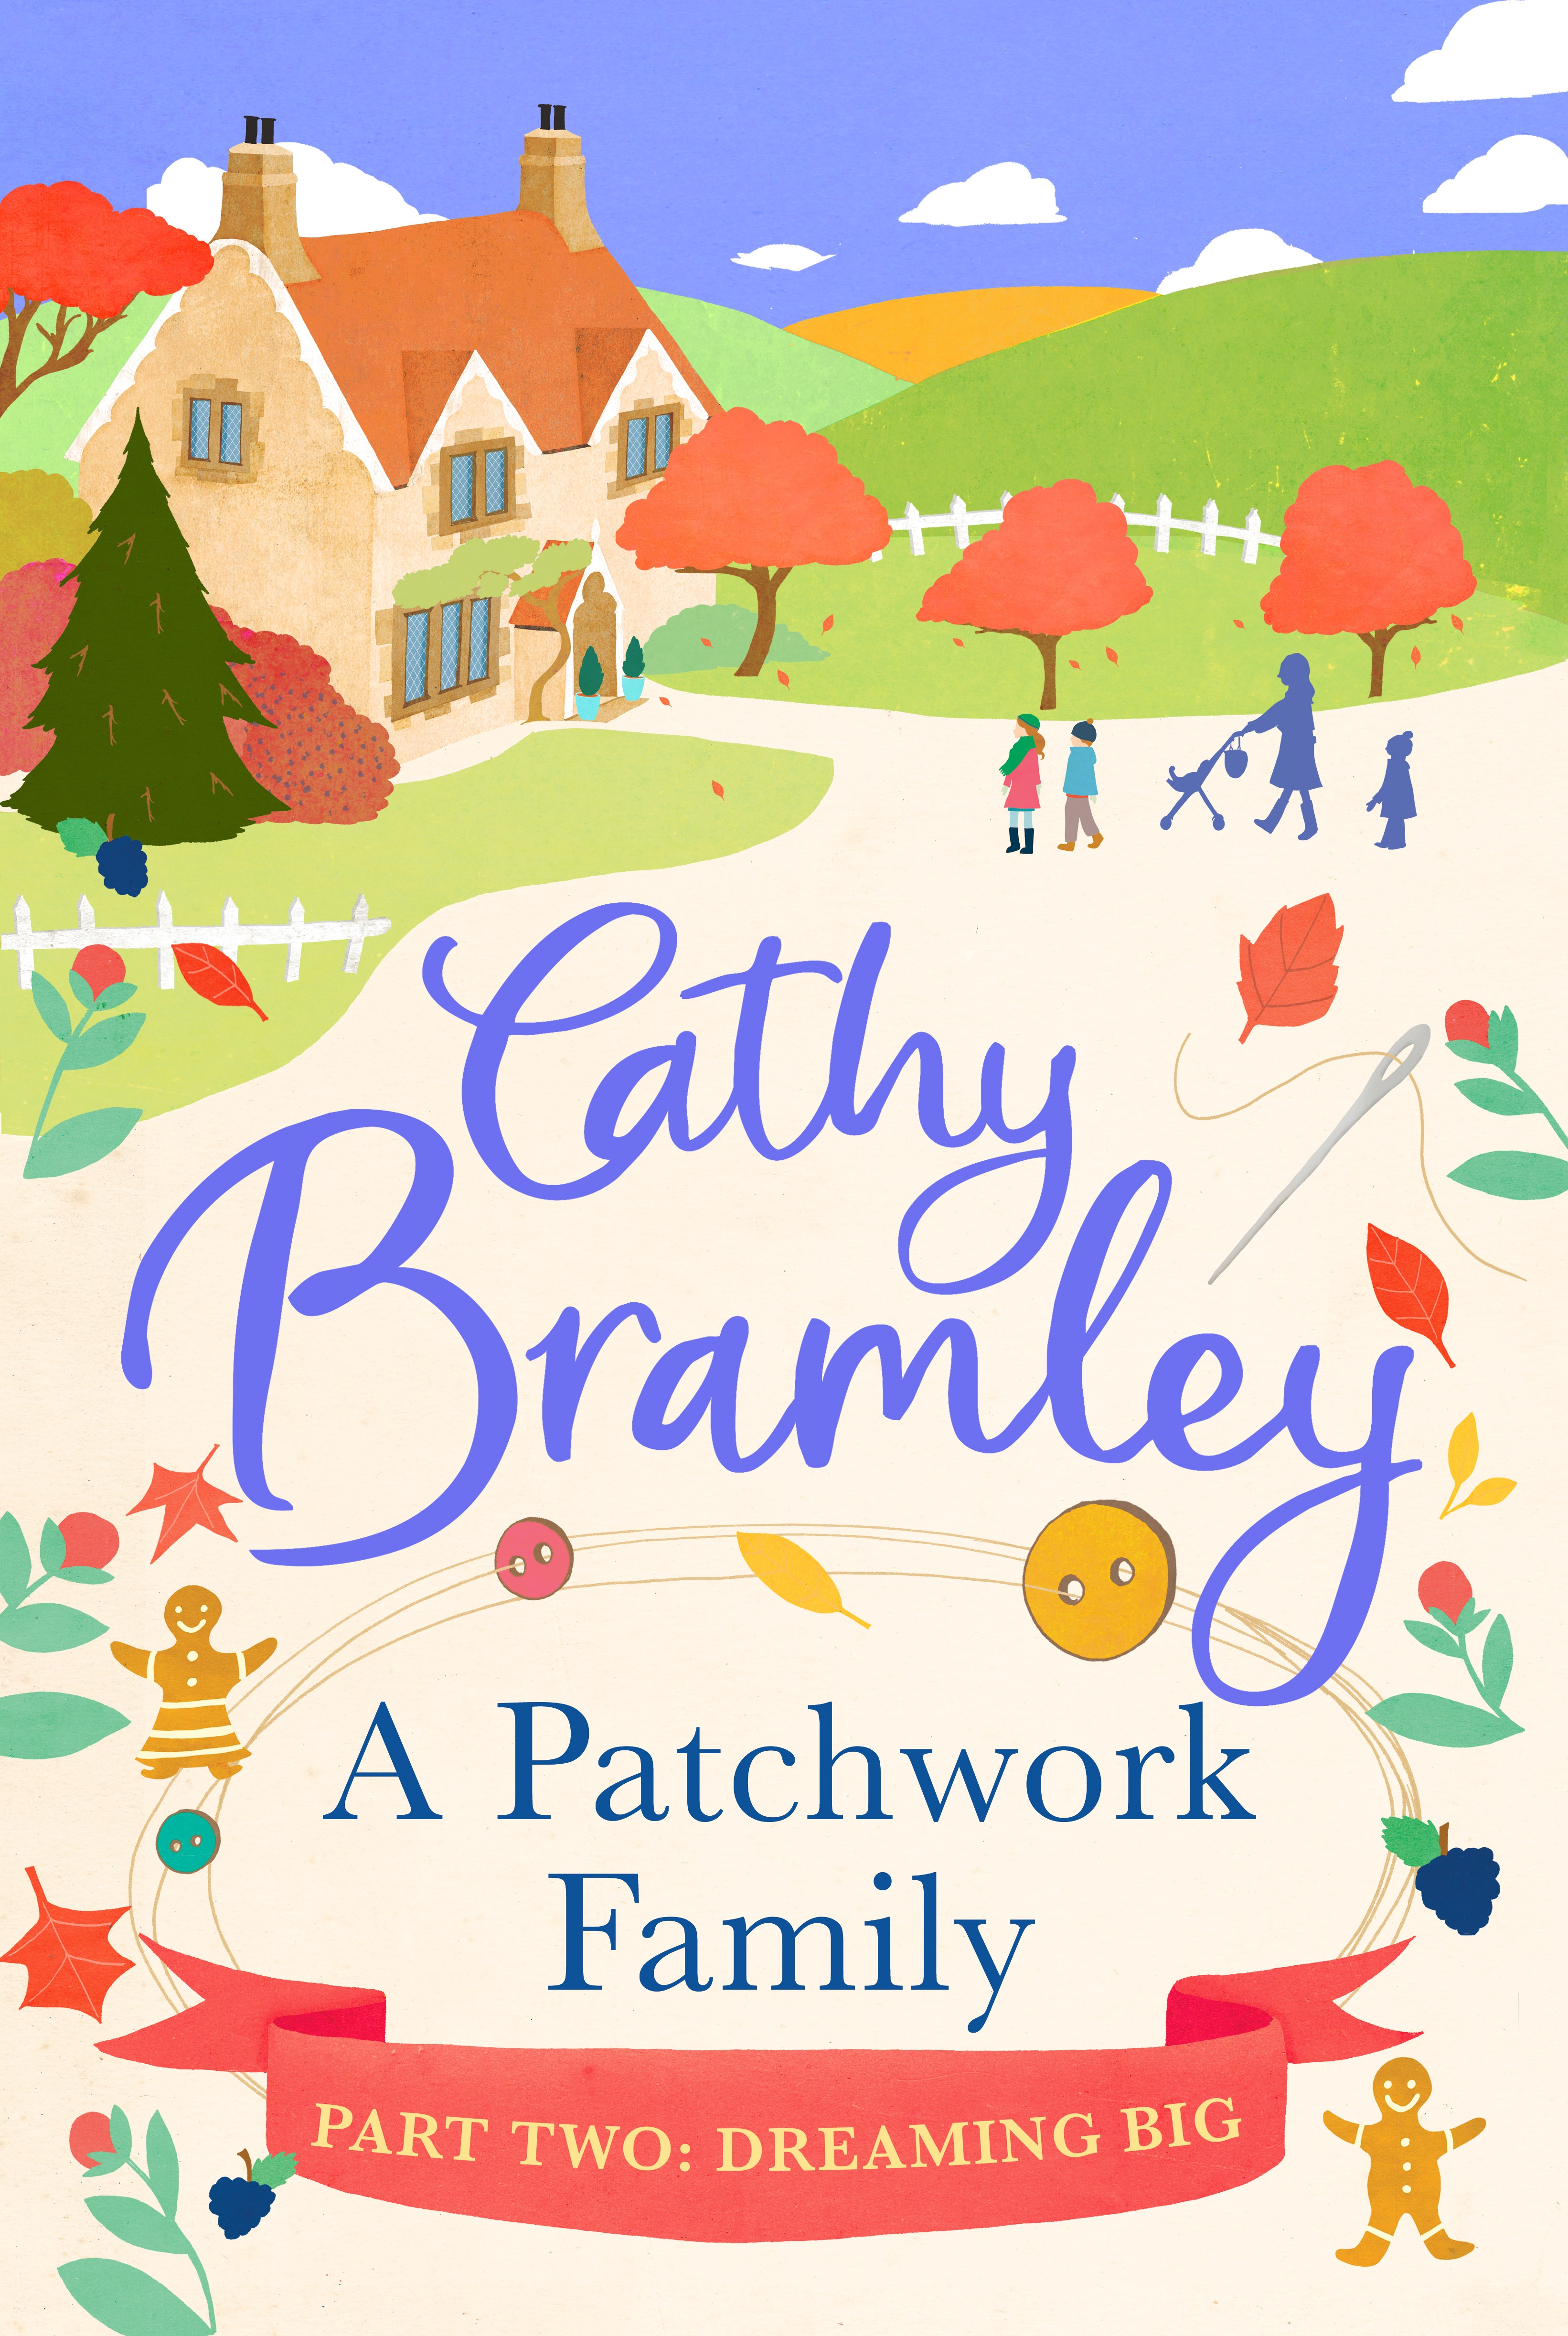 A Patchwork Family - Part Two